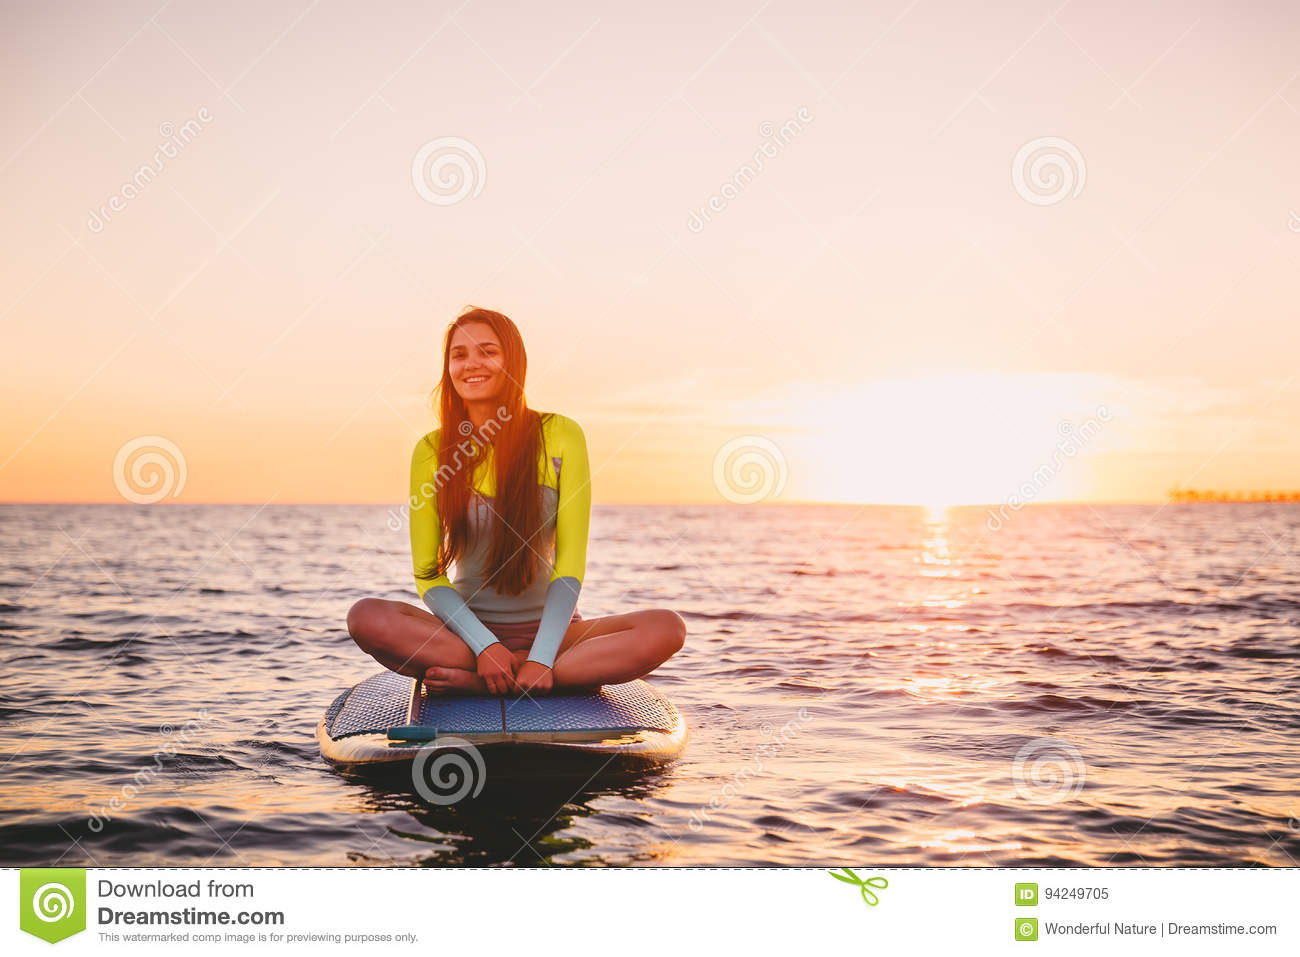 Girl relaxing on stand up paddle board, on a quiet sea with warm sunset colors.